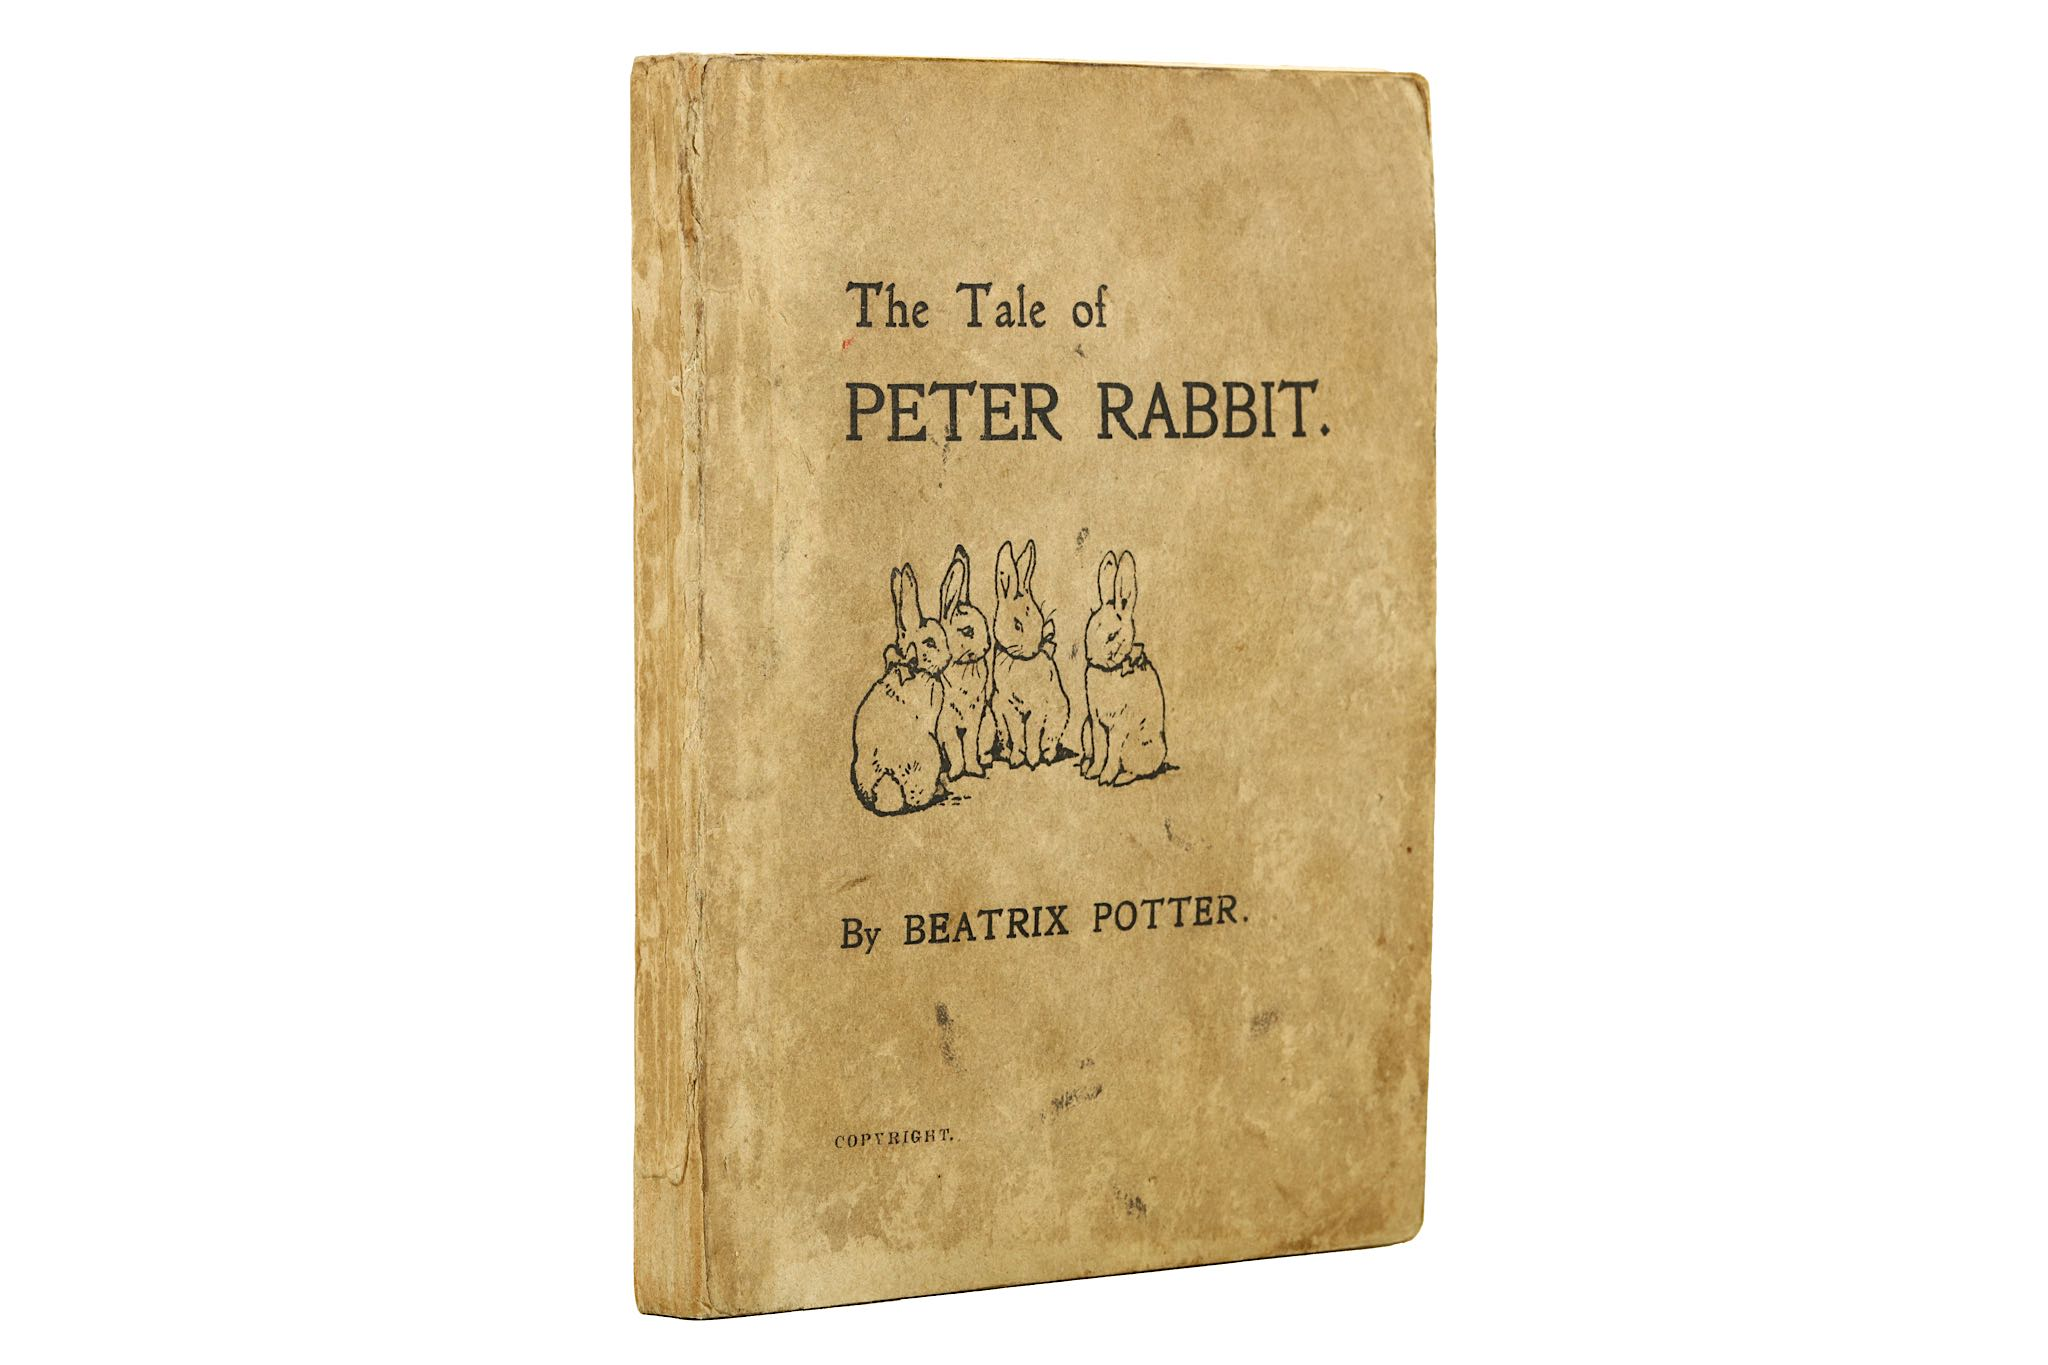 Lot 155 - Potter (Beatrix) The Tale of Peter Rabbit, FIRST E